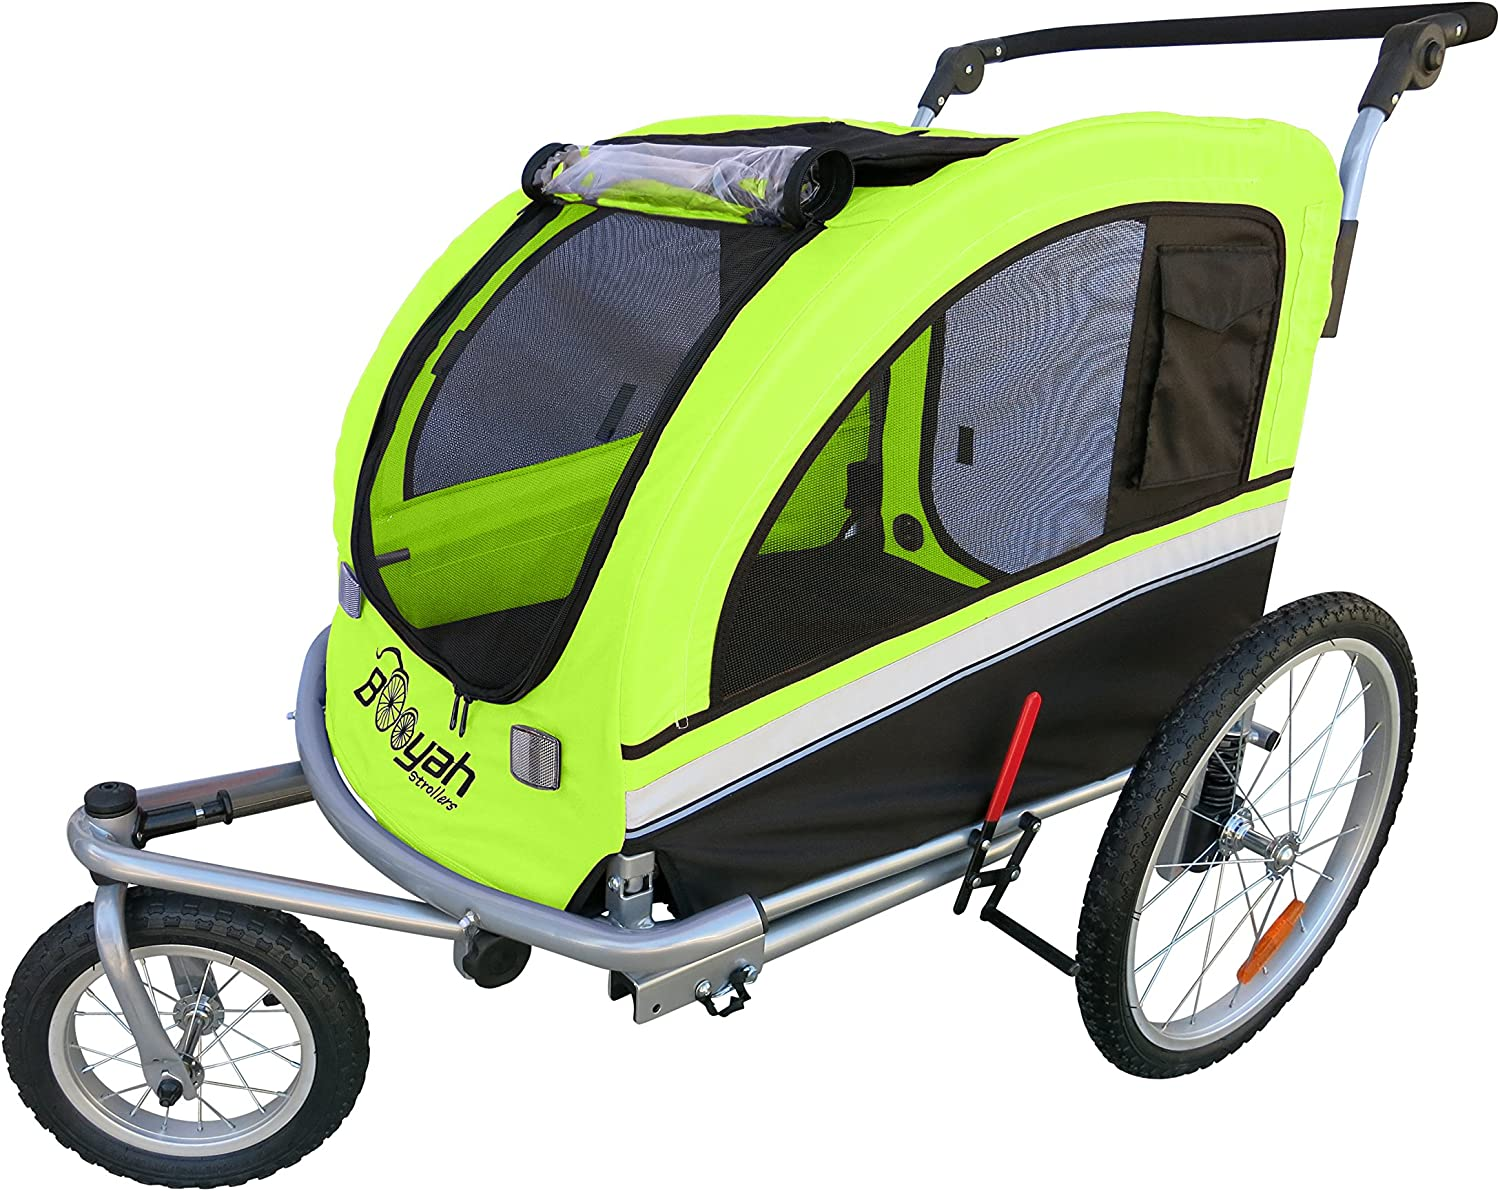 Booyah Large Pet Bike Trailer Dog Stroller Jogger with Shocks MB – Green